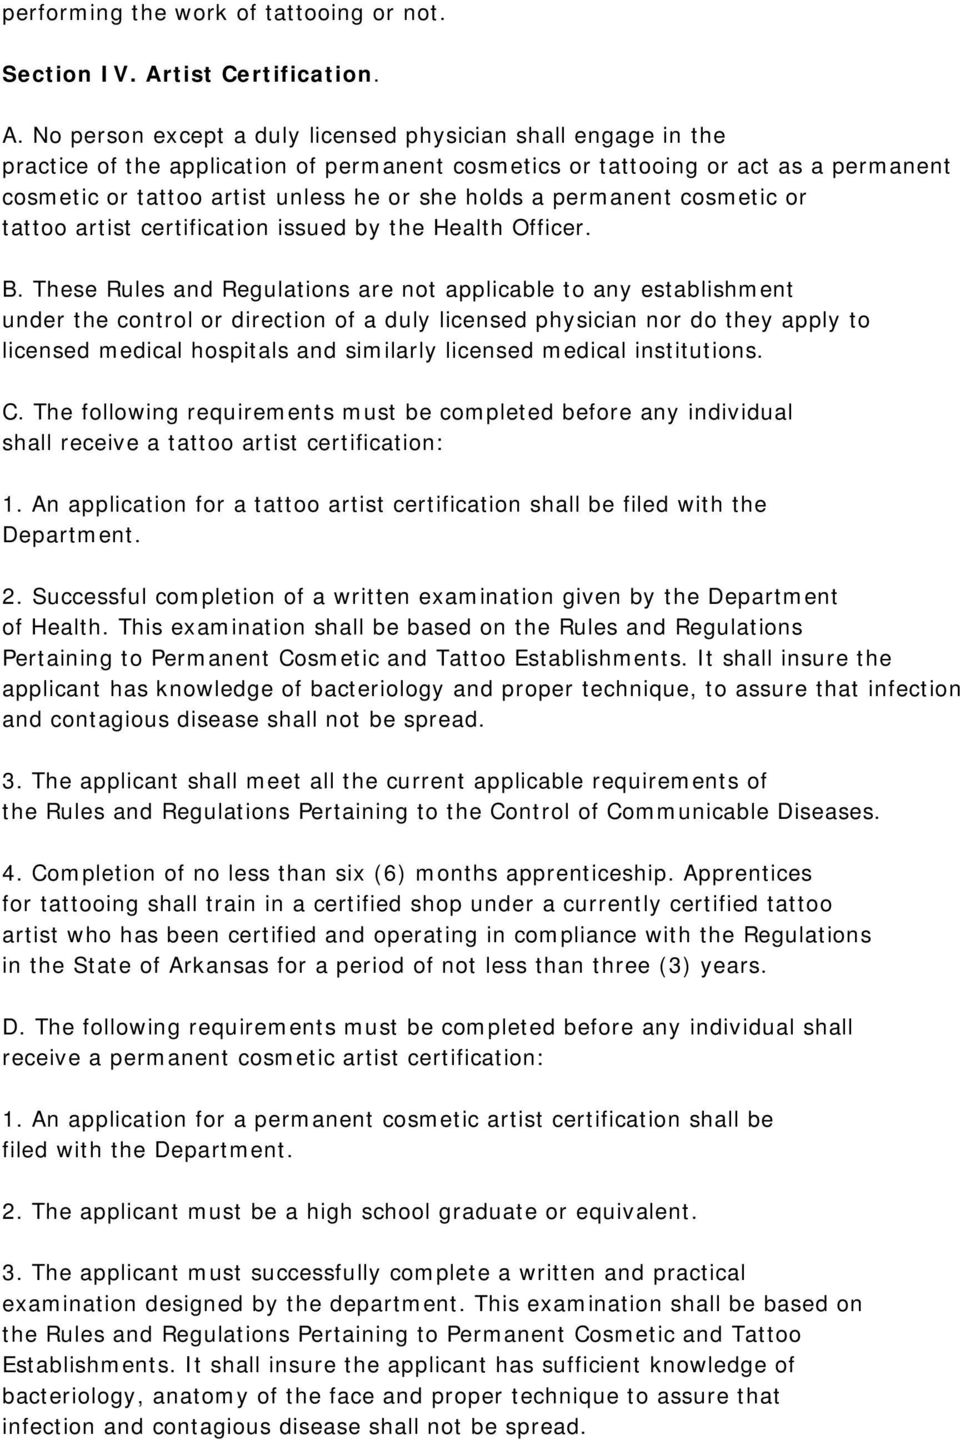 Rules And Regulations Pertaining To Permanent Cosmetic And Tattoo